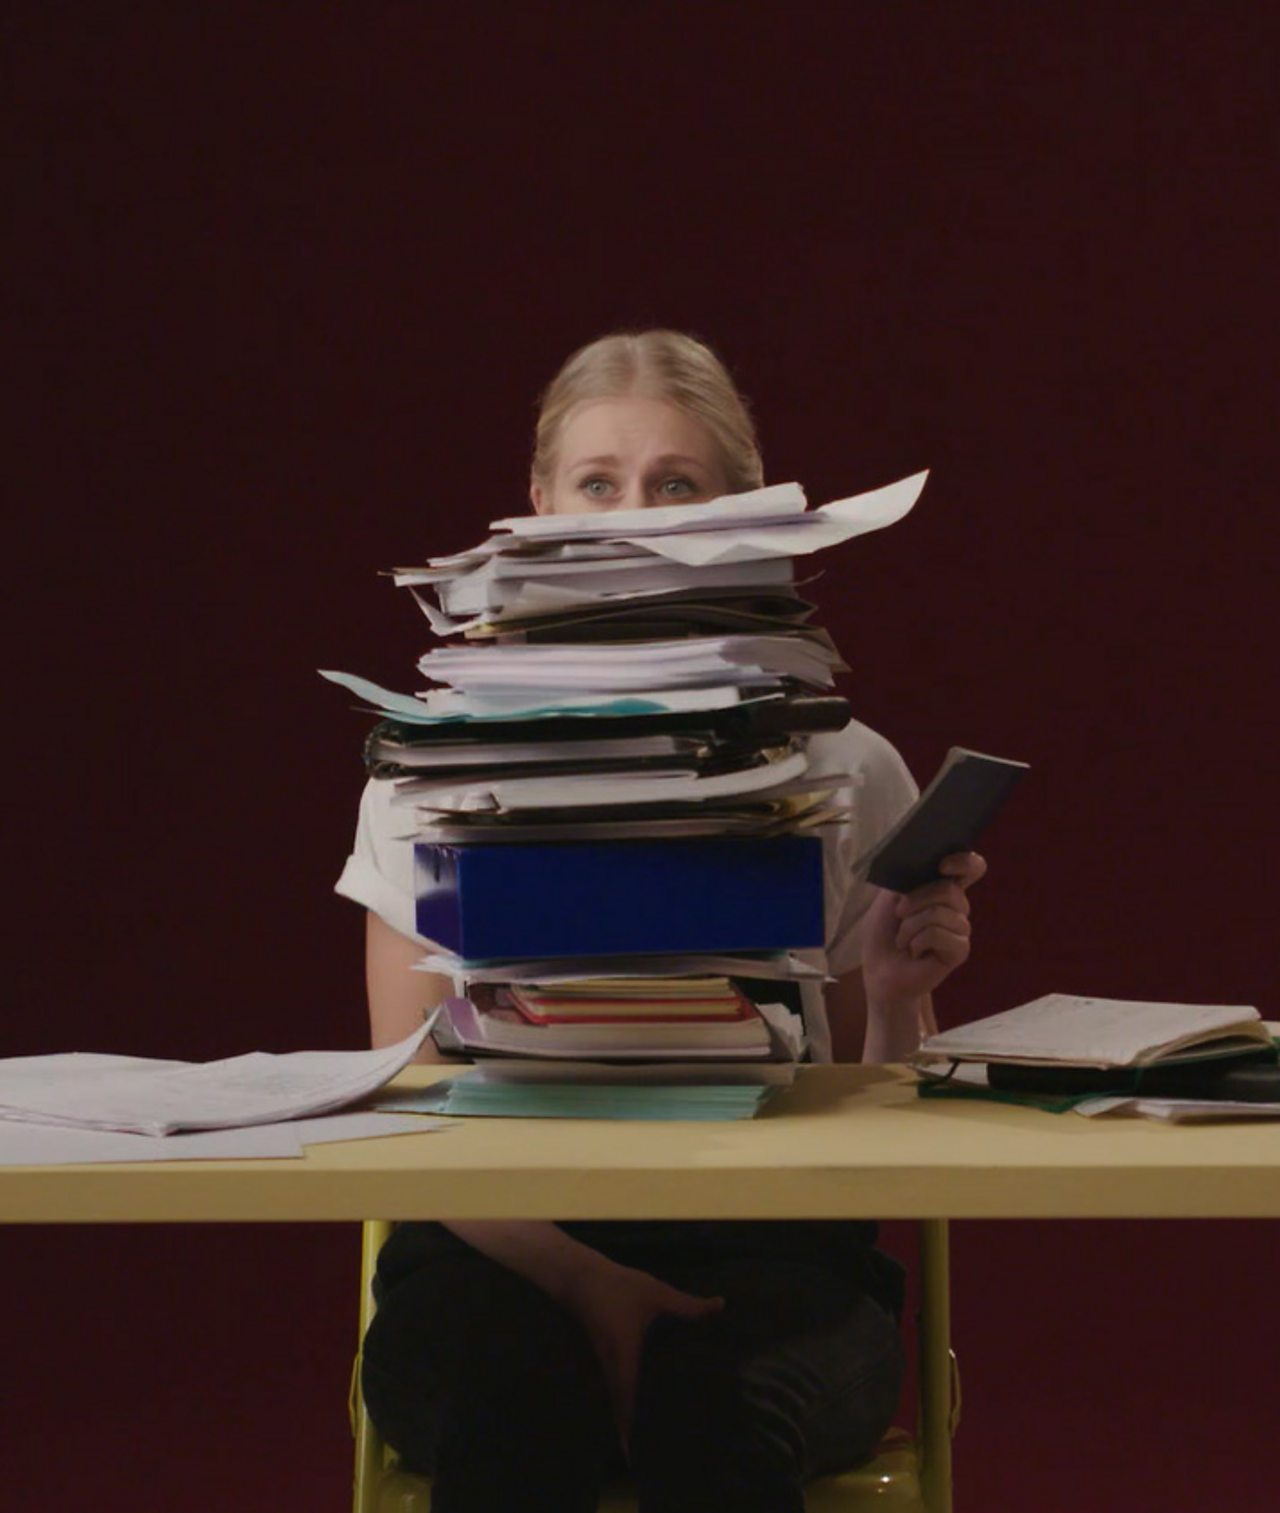 Files stacked with a girl peering over the top